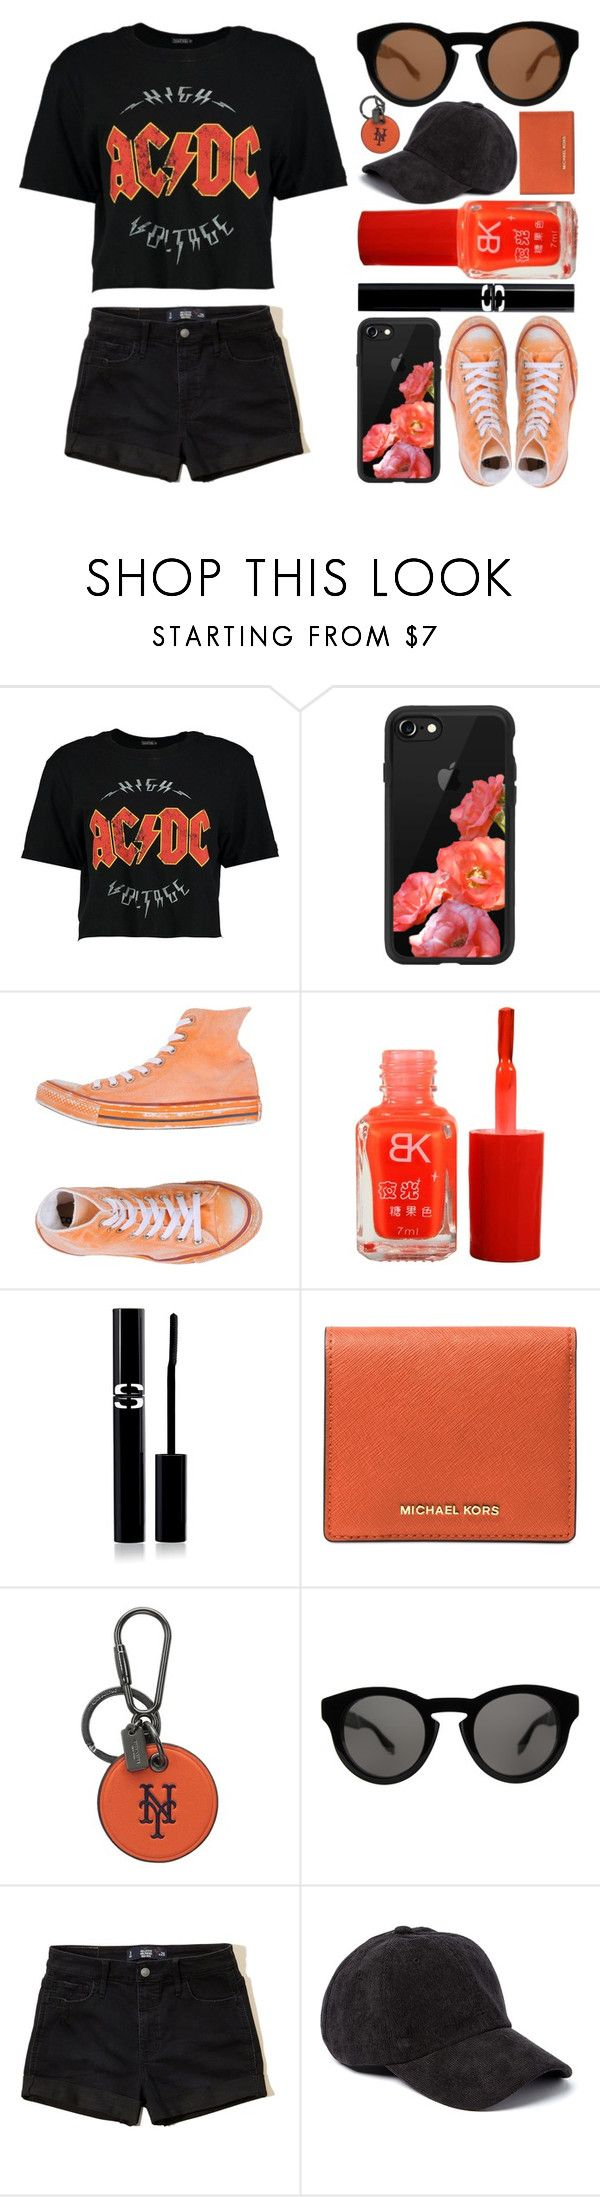 """""""It drives me wild."""" by lexi-loves-fashion ❤ liked on Polyvore featuring Boohoo, Casetify, Converse, Sisley, Michael Kors, Coach, Givenchy, Hollister Co., Boardwalk Style and music"""